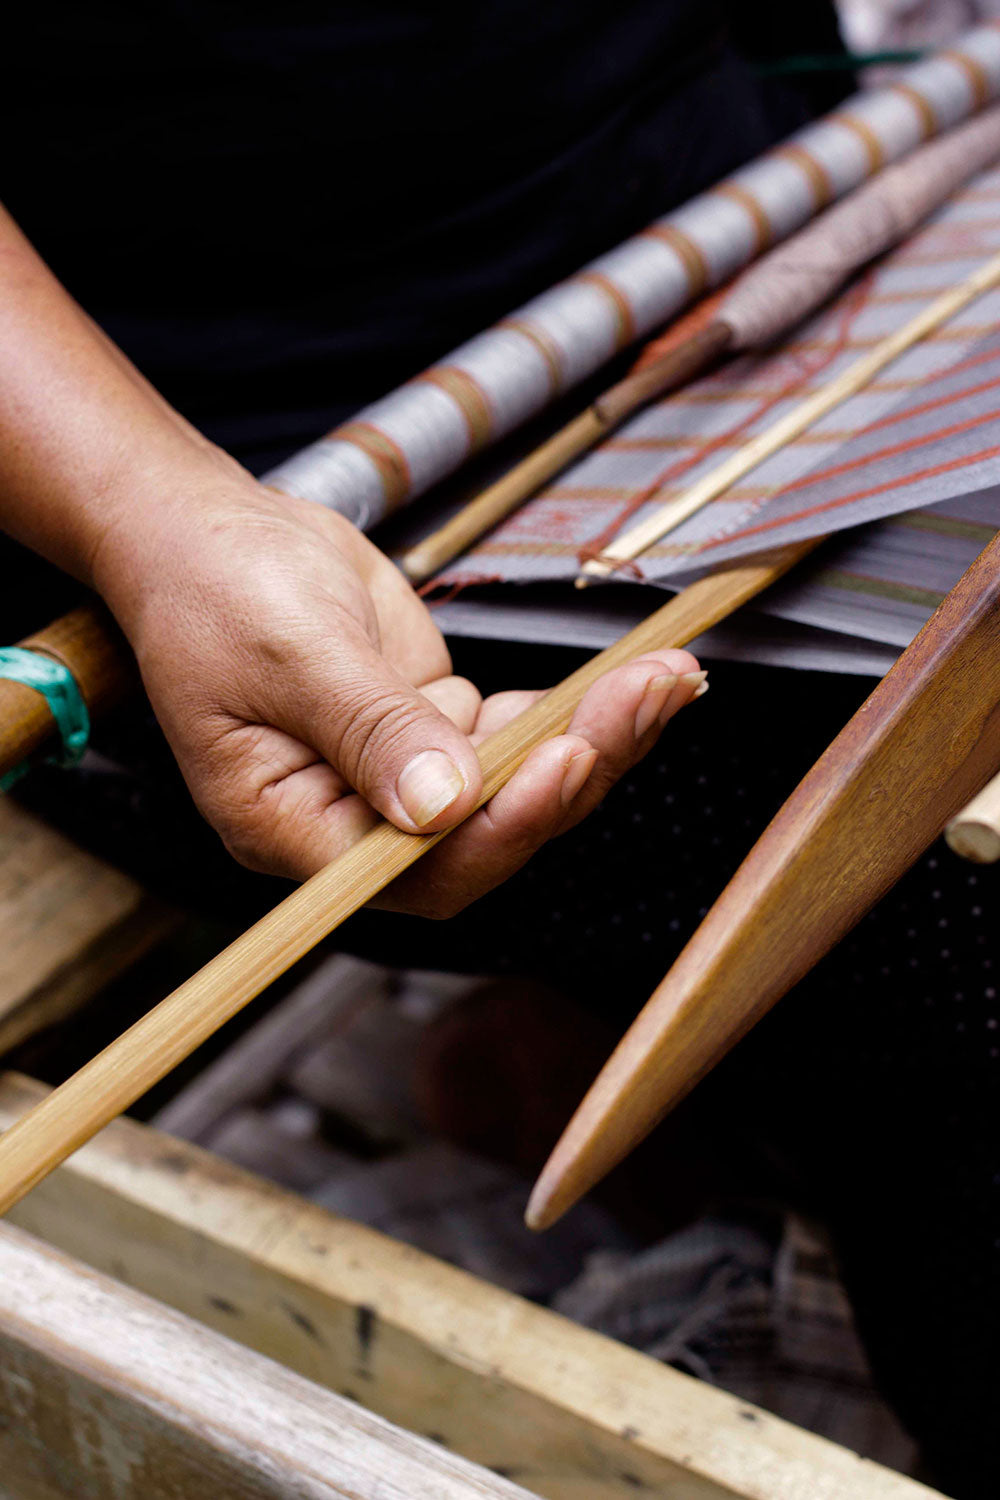 Loin loom or backstrap loom is the oldest and simplest device used to weave cloth and it has been historically used by the tribes in Nagaland.